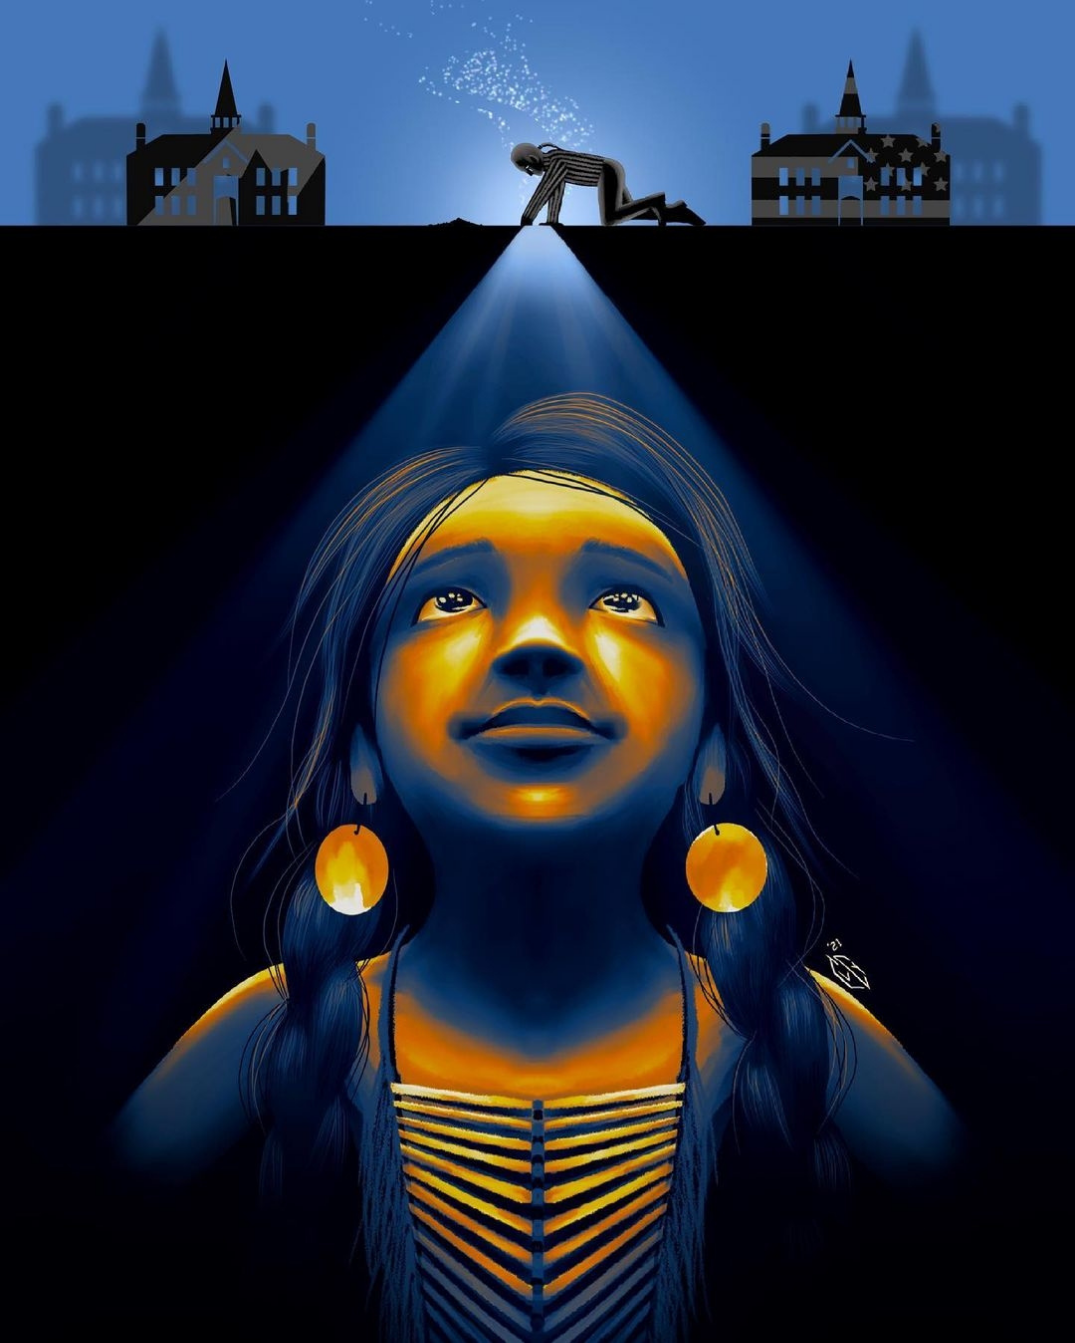 Artwork by Chad L. Yellowjohn called 'Finally Going Home' shows an Indigenous child in traditional clothing, earrings and long braided hair looking up towards the surface (they are underground) where a small figure of an Indigenous person is digging into the soil with two Indian Residential Schools in the background. The child has a slight smile on their face as if they know they have finally been found. The art is in reference to the 1000+ children's remains found on the ground of Canadian residential school.